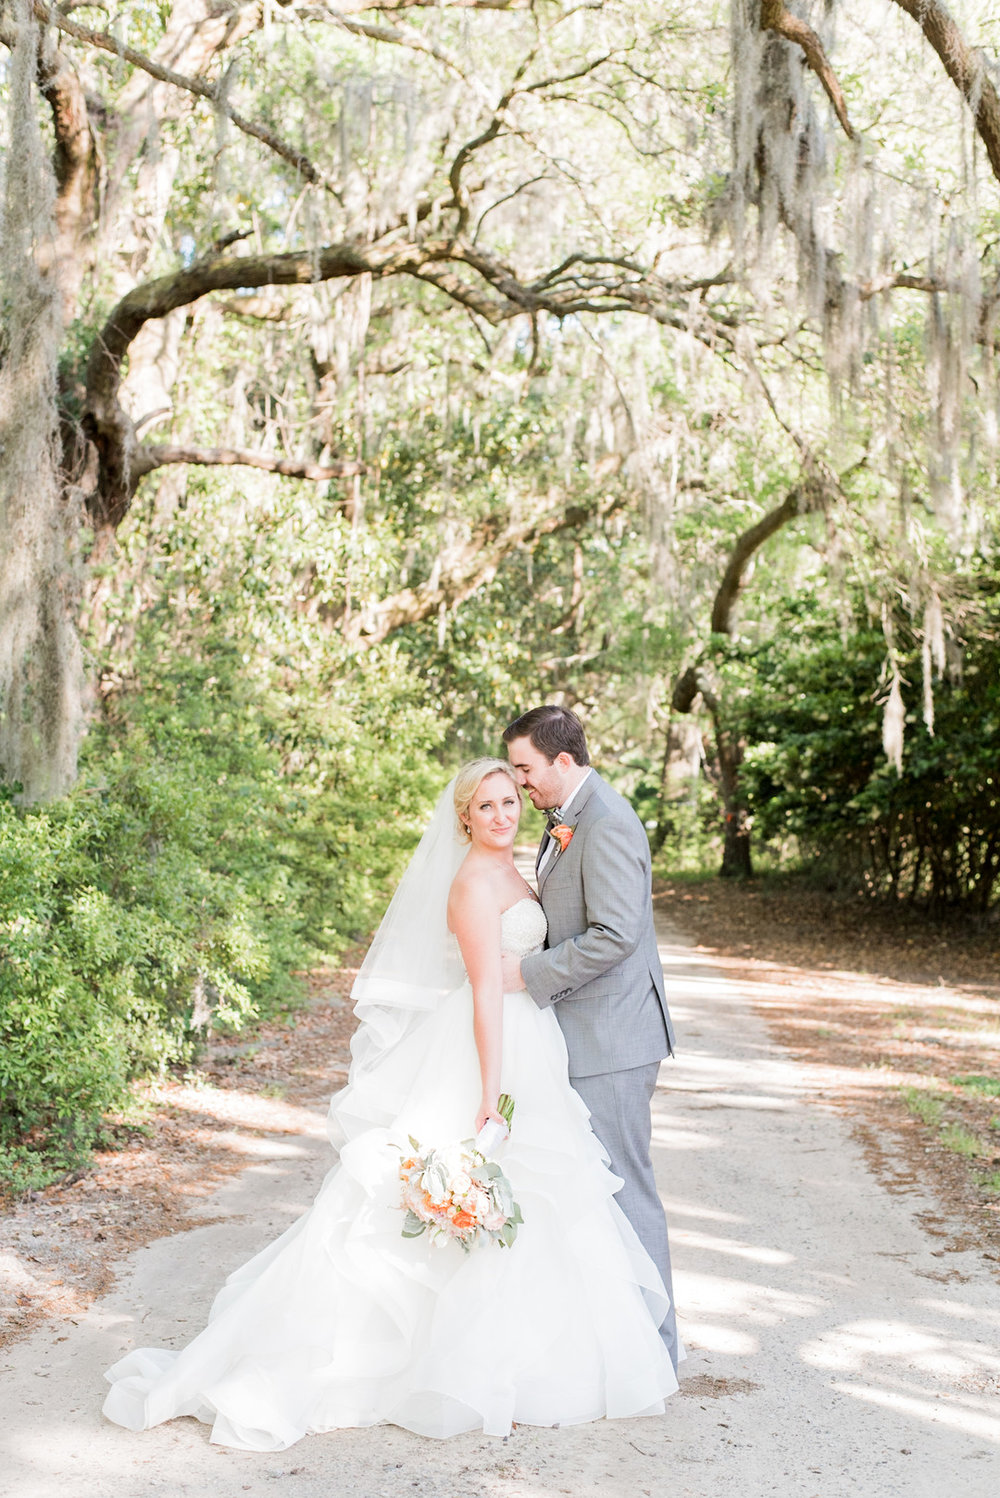 Megan and Luke: A Sunny Day for an Old Wide Awake Plantation Wedding | Palmetto State Weddings